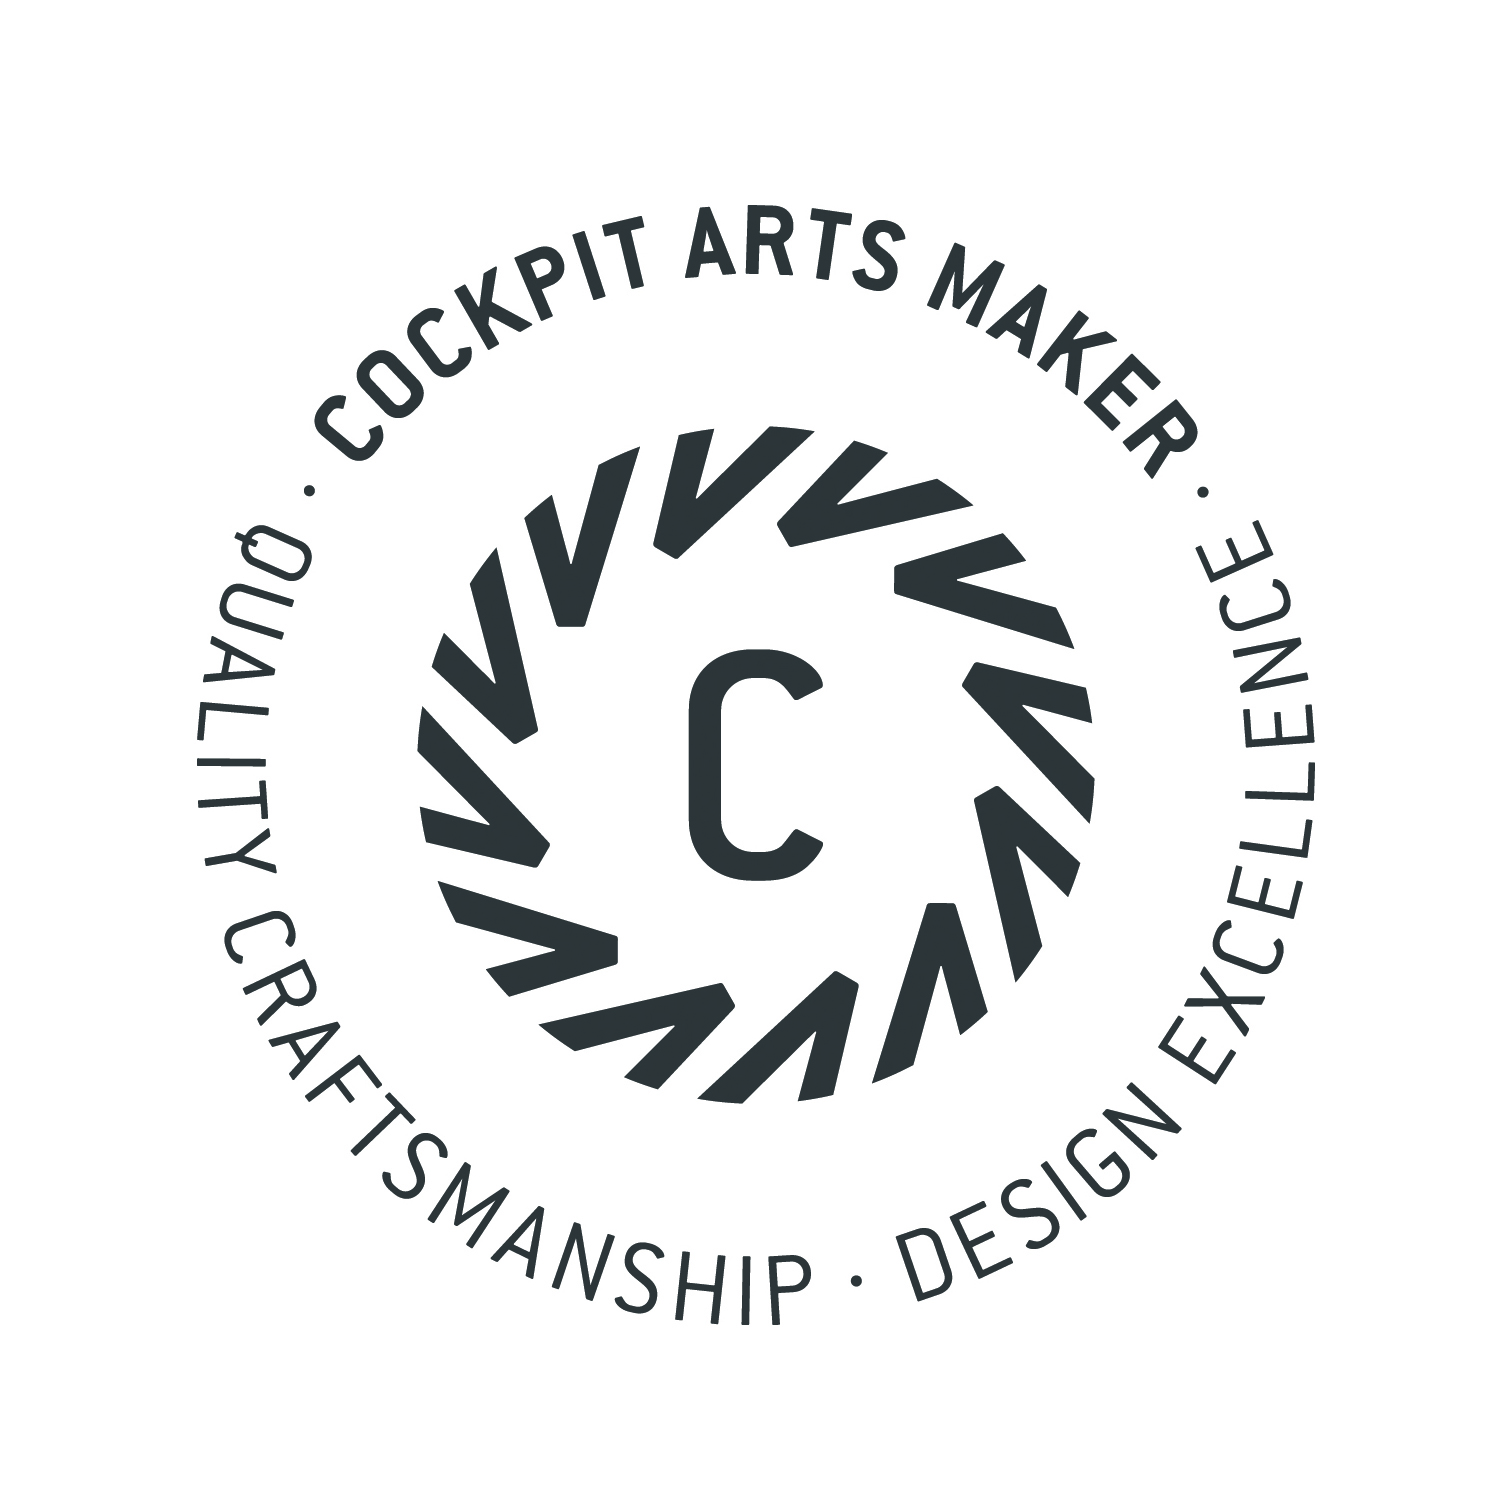 CA-Makers-Mark-Complete-Grey.jpg